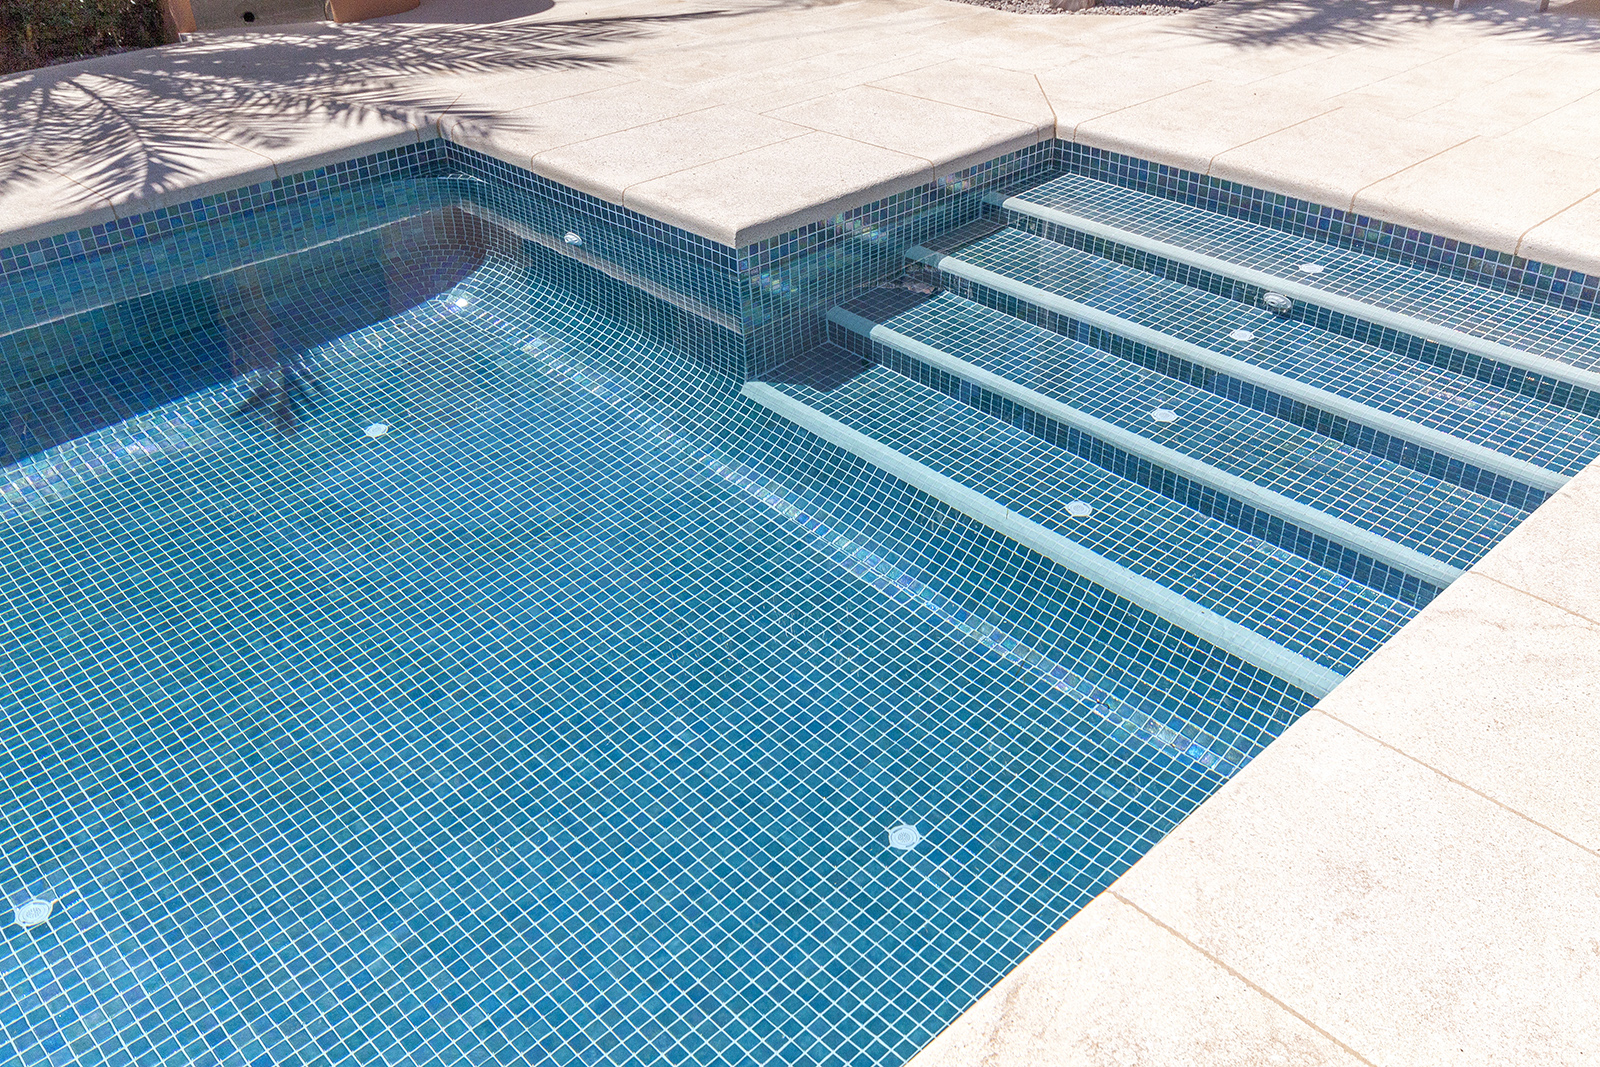 Mosaic Tiles for swimming pools - Ezarri